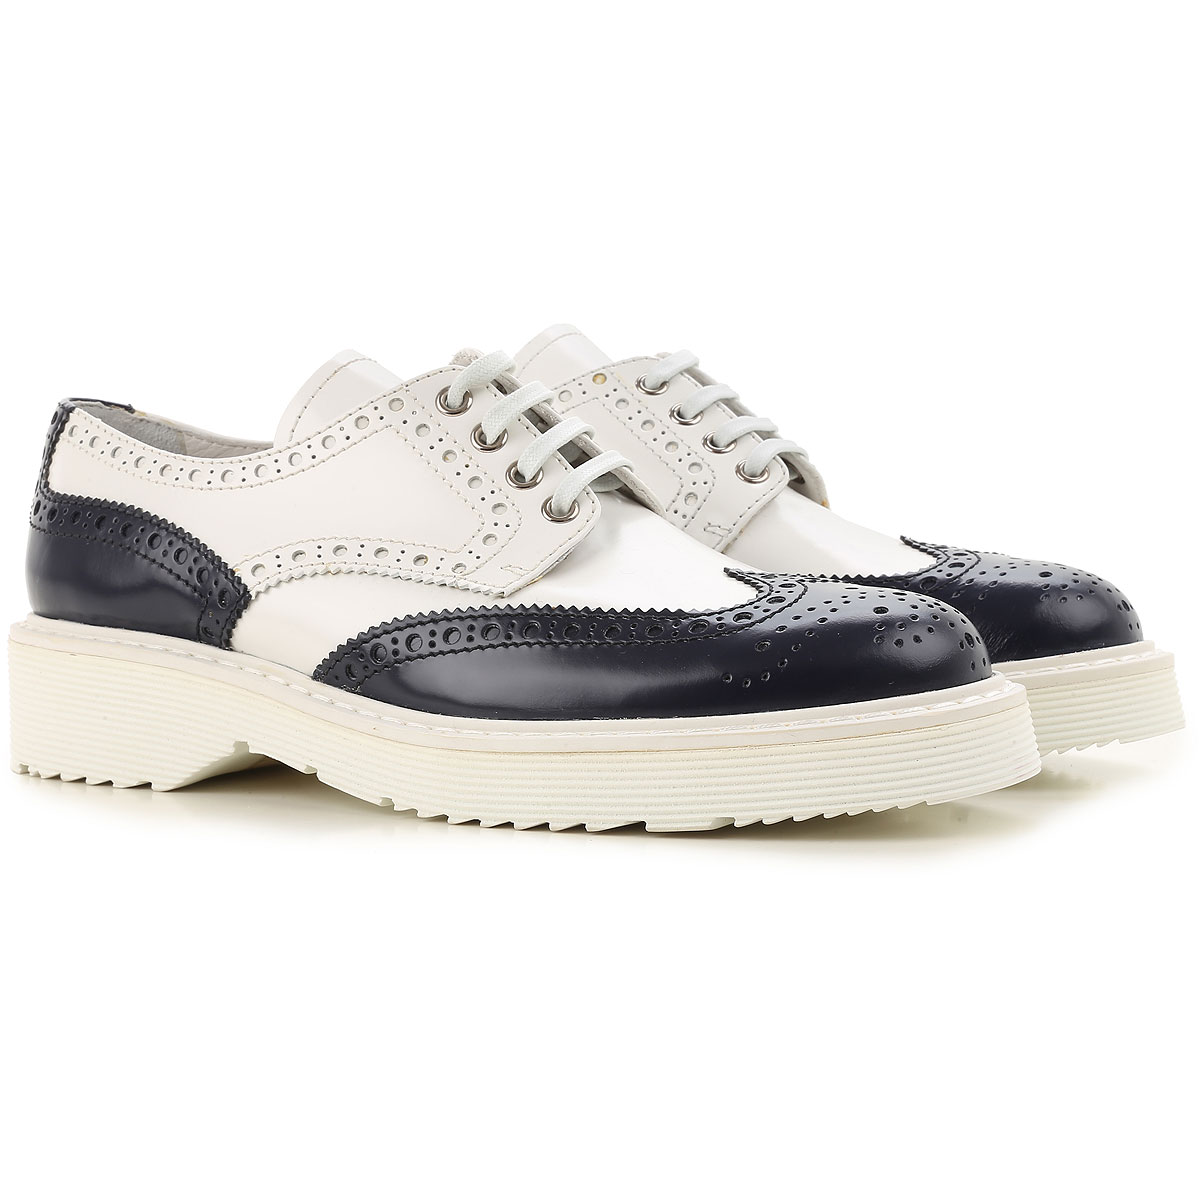 Image of Prada Brogues Oxford Shoes On Sale in Outlet, Baltic Blue, Leather, 2017, 8 8.5 9.5